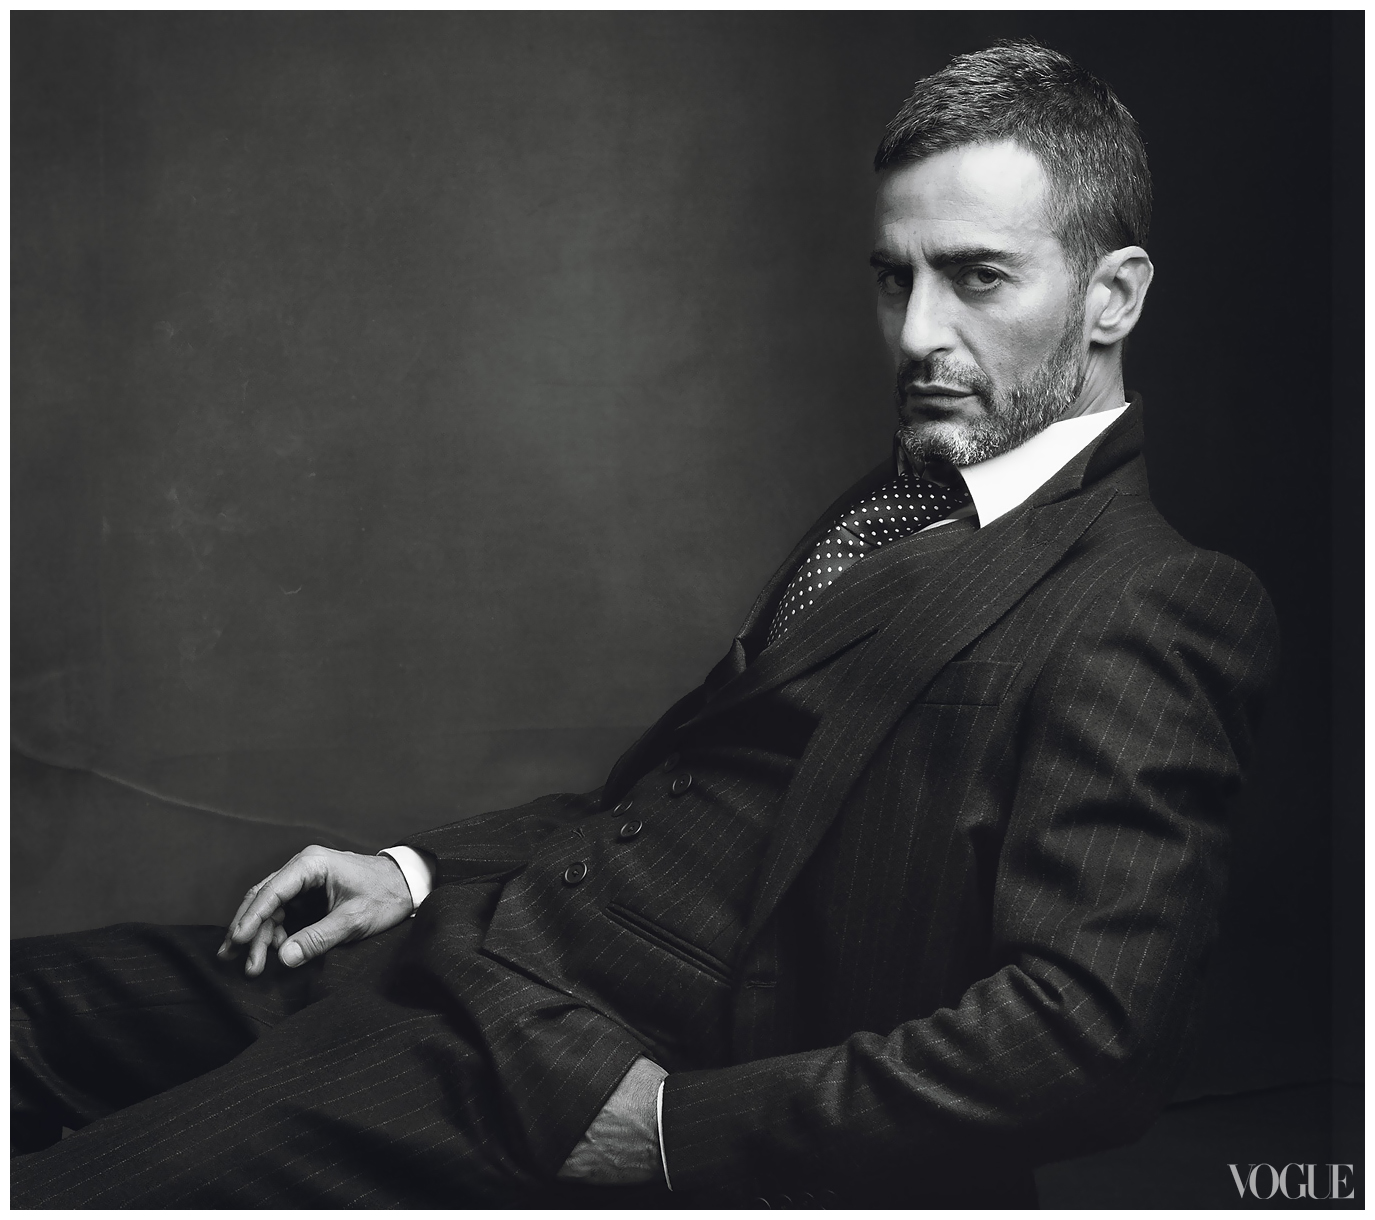 Marc jacobs lv photo annie leibovitz pleasurephoto room